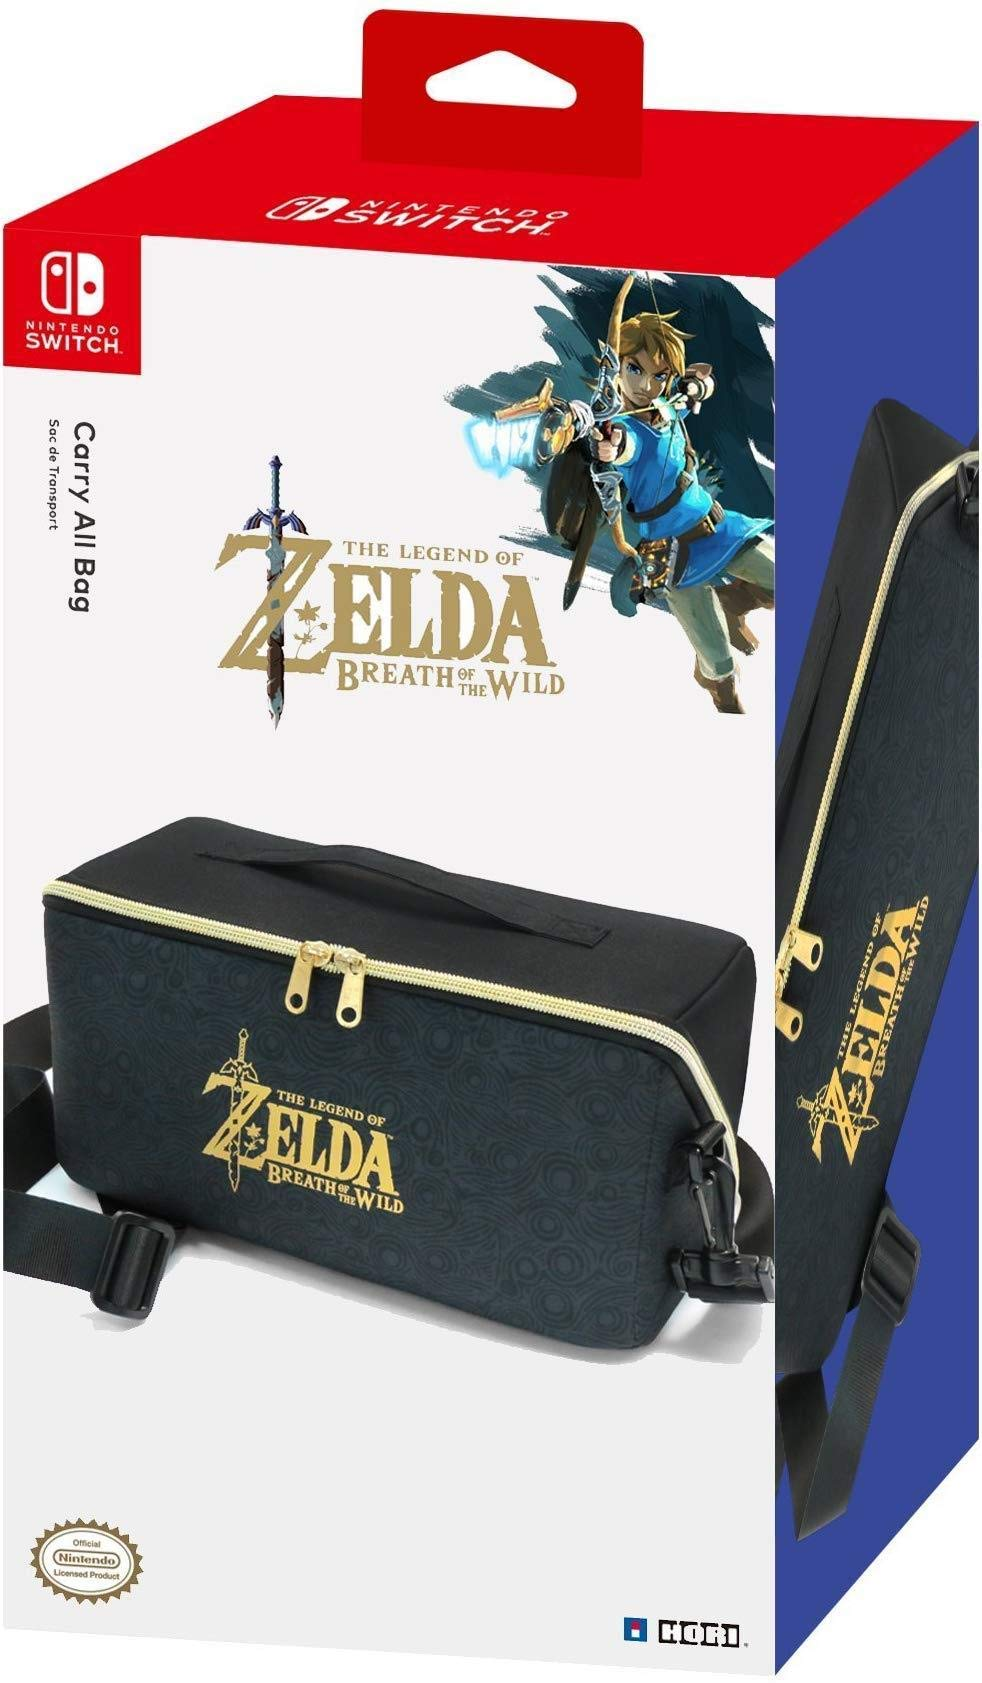 Bolsa Carry All Bag Zelda Switch Hori - Nintendo Switch